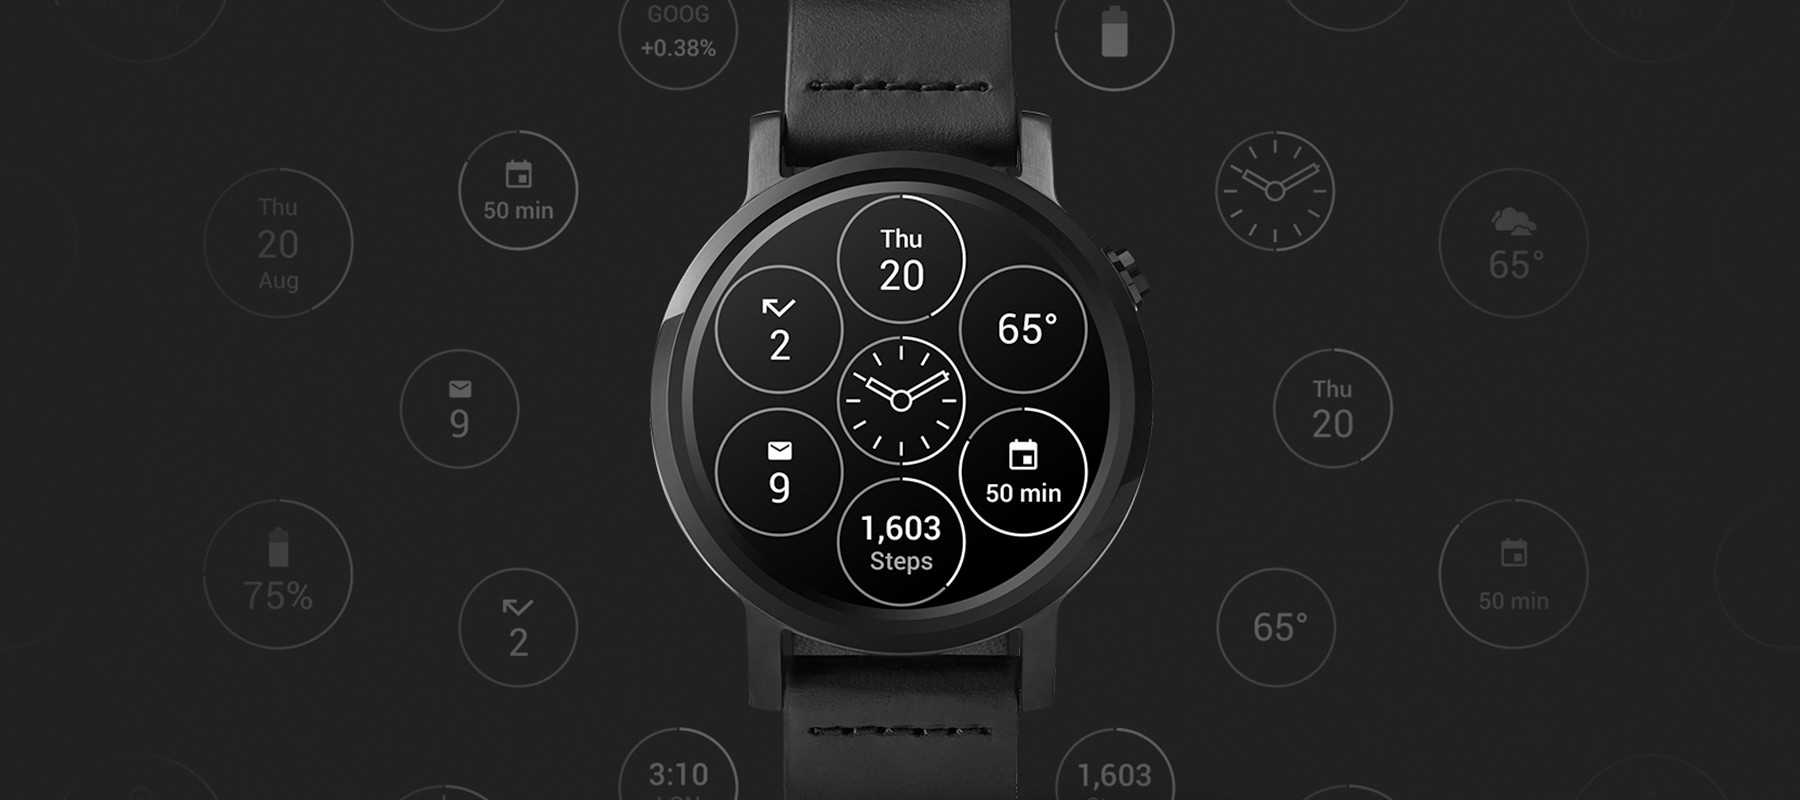 caseStudy-androidWear-05